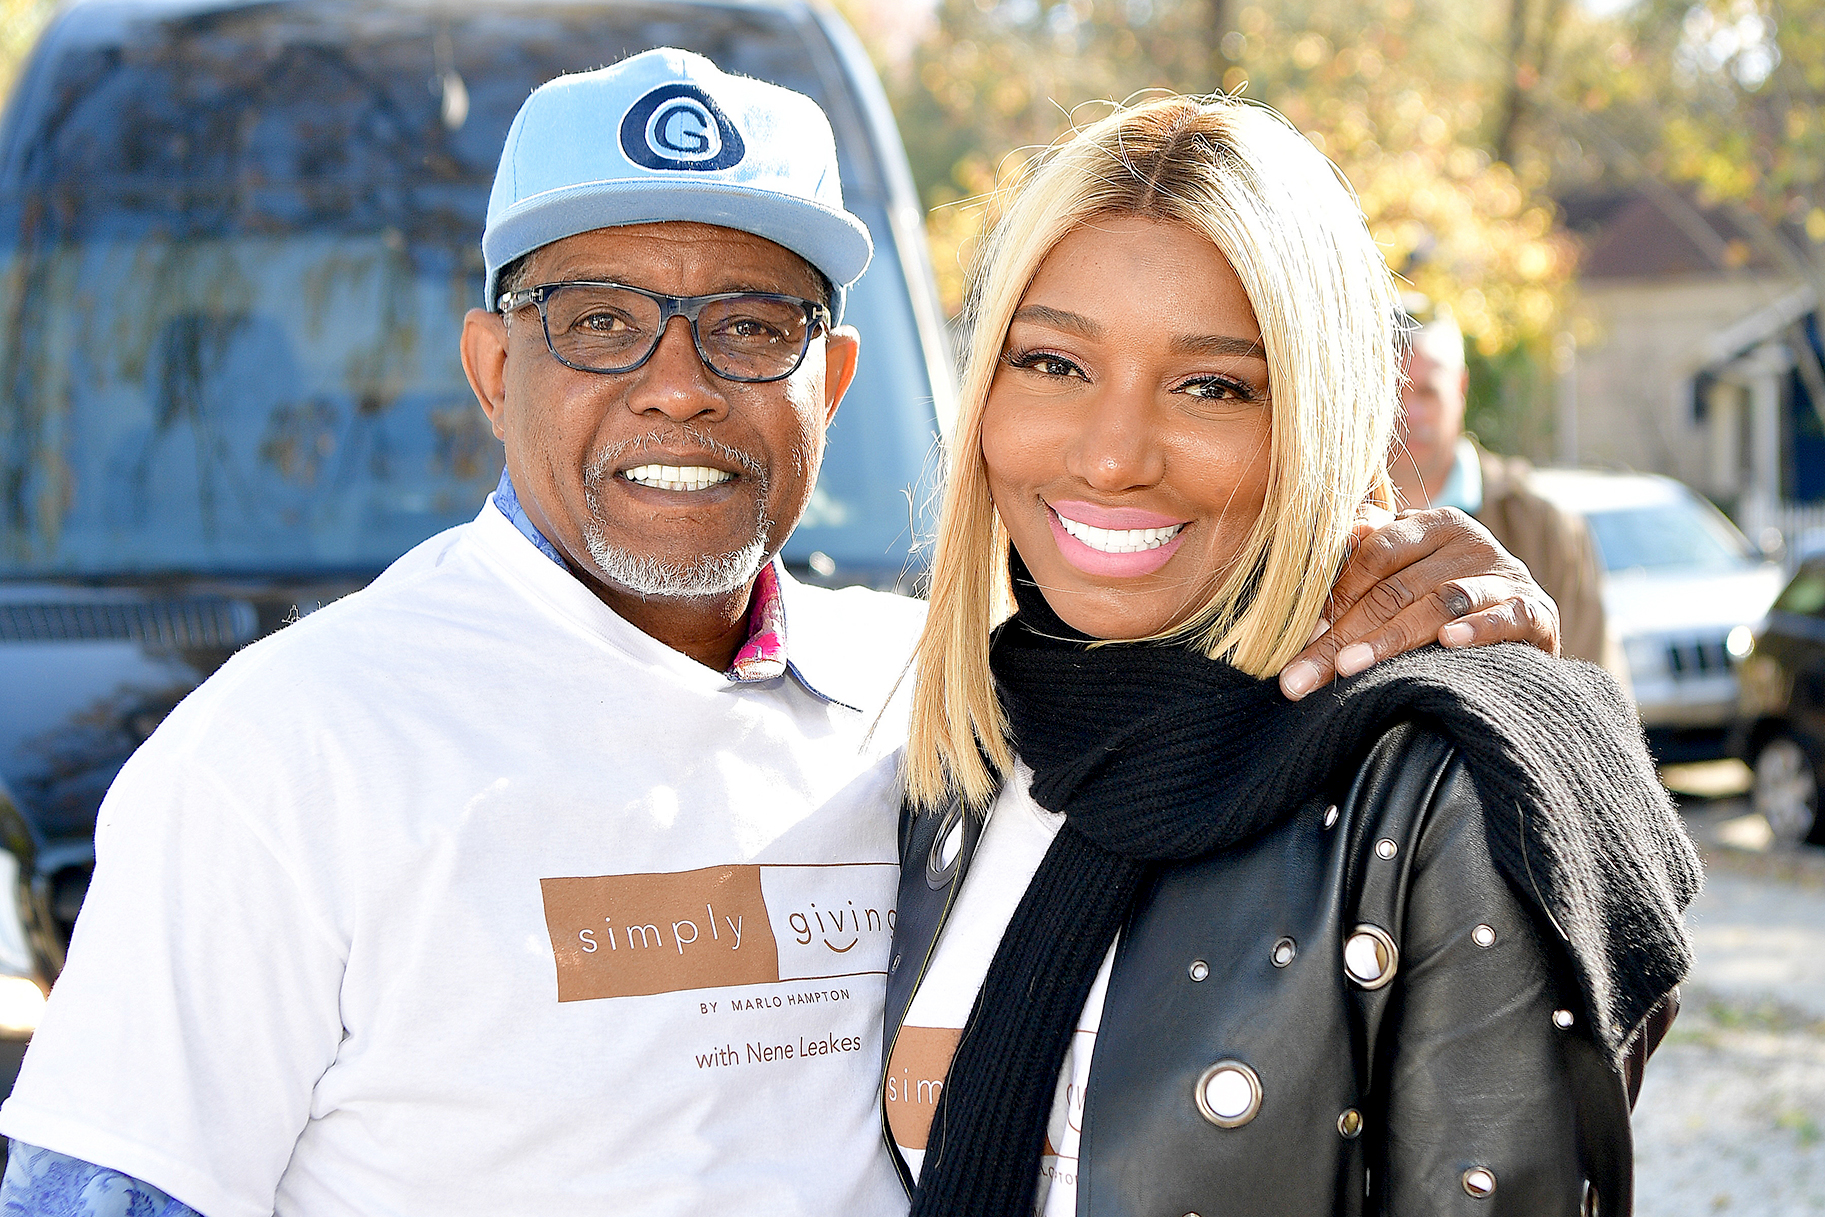 nene-leakes-updates-fans-on-gregg-leakes-situation-the-couple-is-waiting-for-the-results-of-his-latest-scan-for-cancer